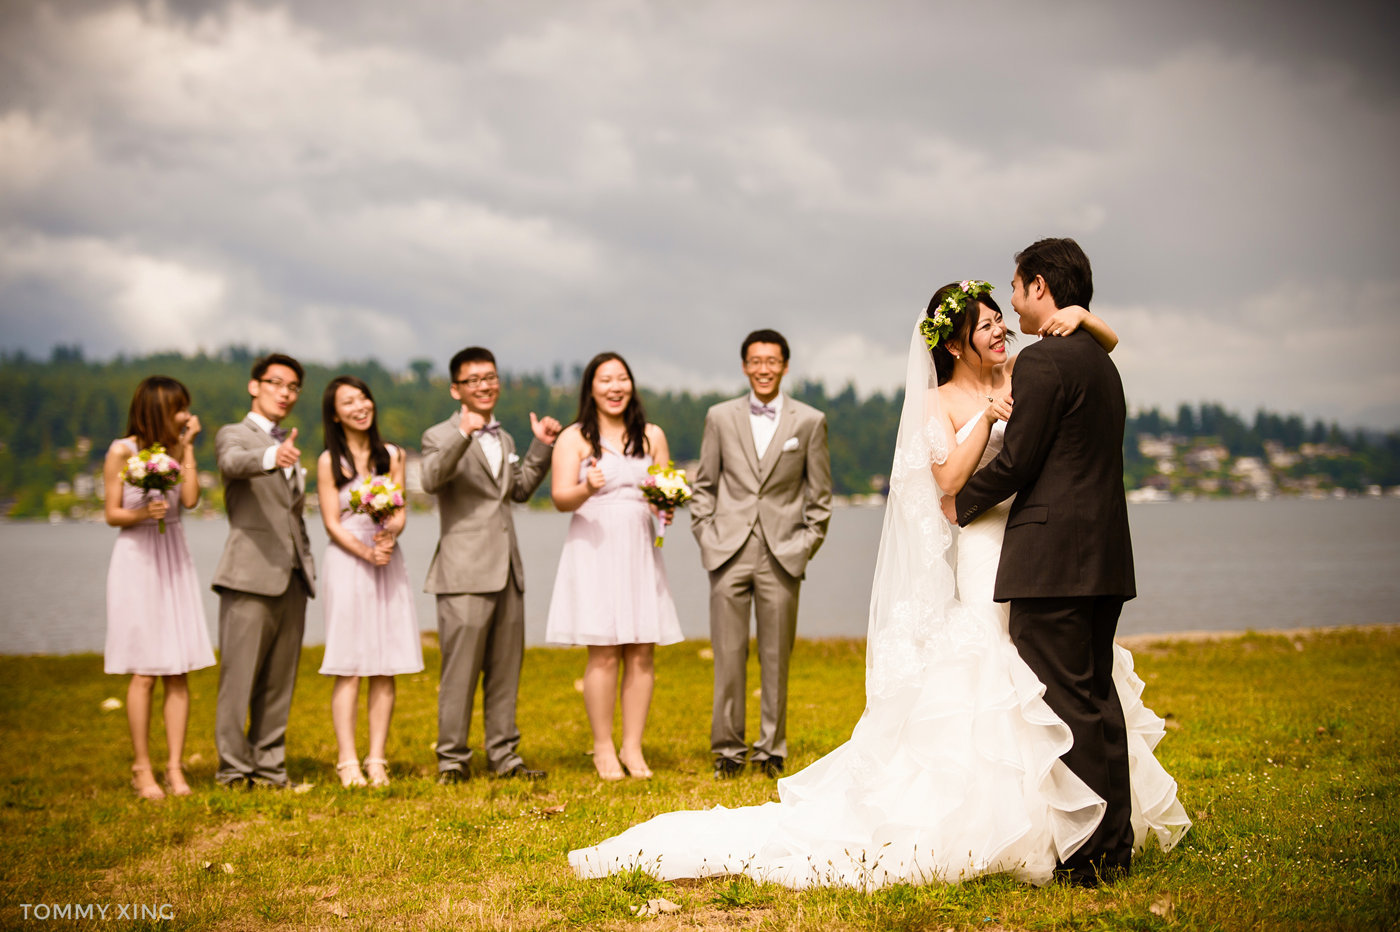 Seattle Wedding and pre wedding Los Angeles Tommy Xing Photography 西雅图洛杉矶旧金山婚礼婚纱照摄影师 116.jpg